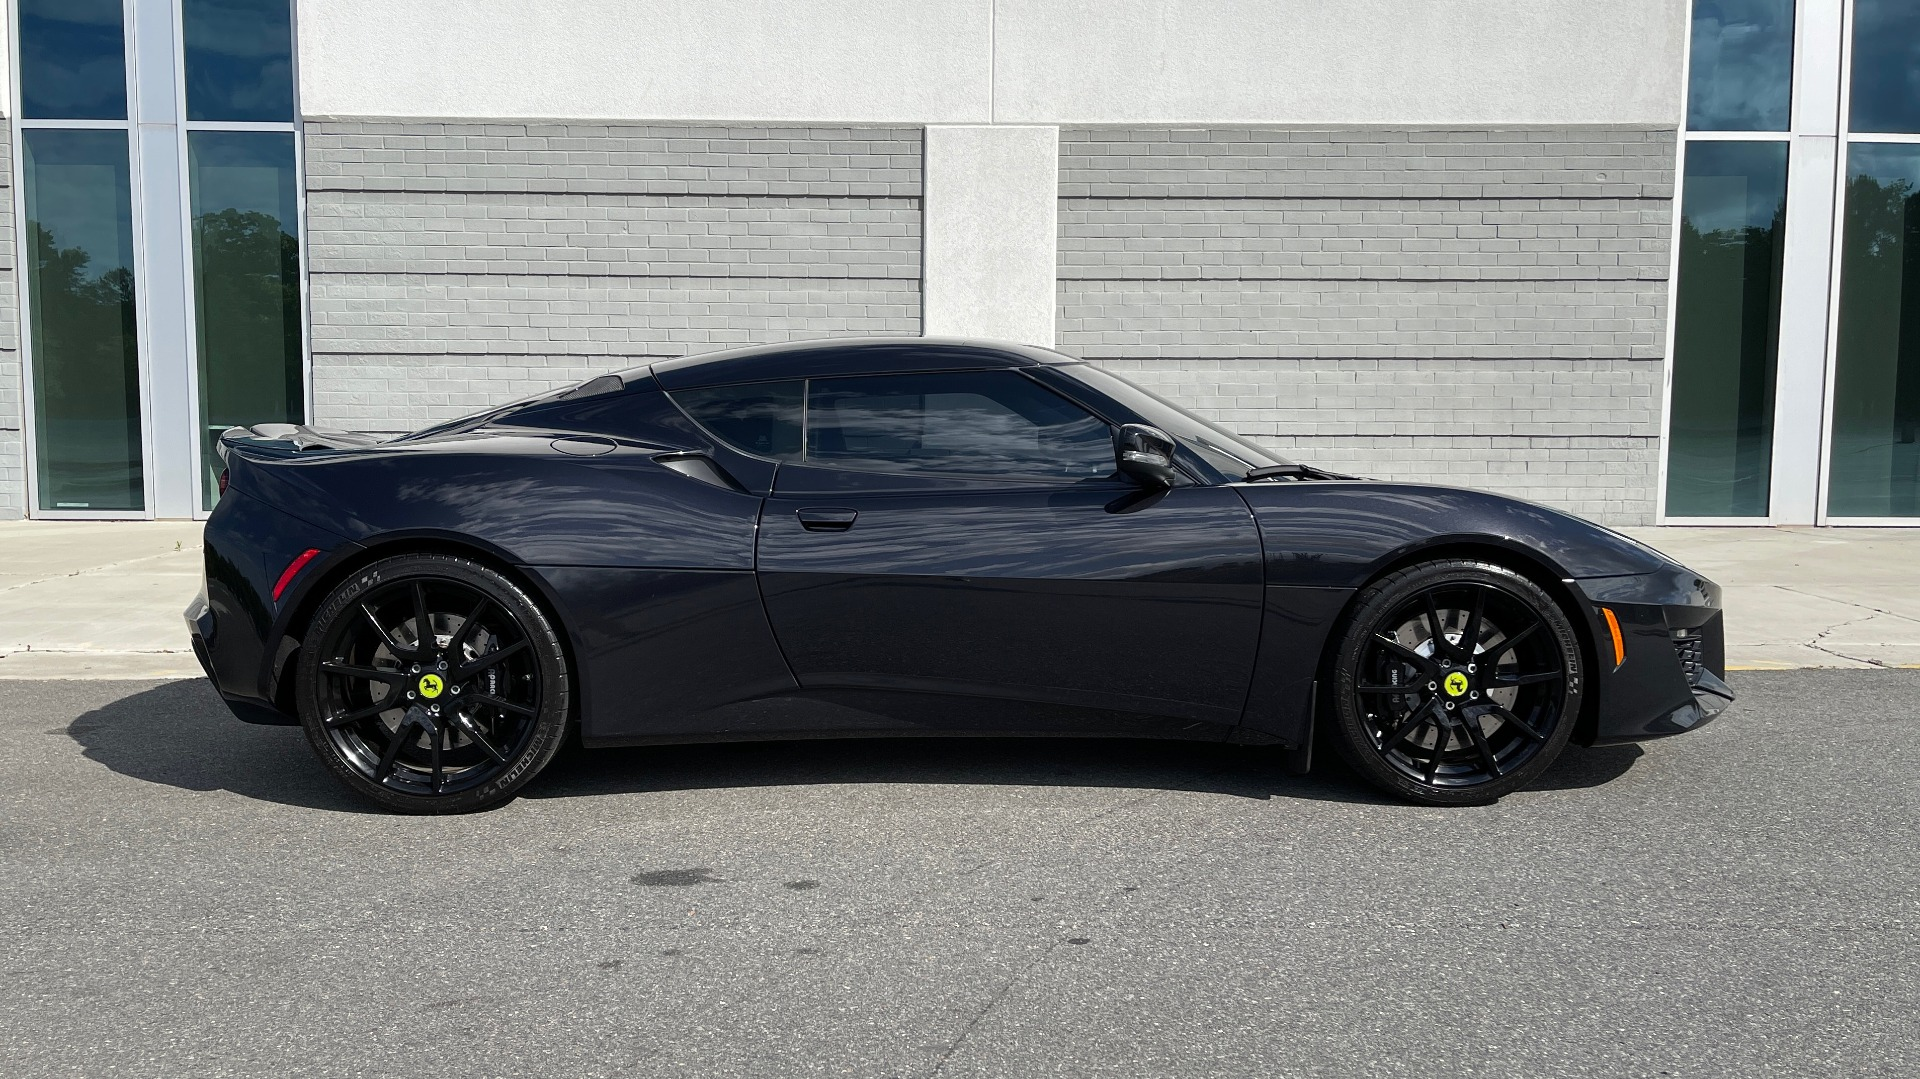 Used 2017 Lotus EVORA 400 COUPE / 3.5L SUPERCHARGED V6 / PDL SHIFT AUTO / NAV / REARVIEW for sale Sold at Formula Imports in Charlotte NC 28227 3